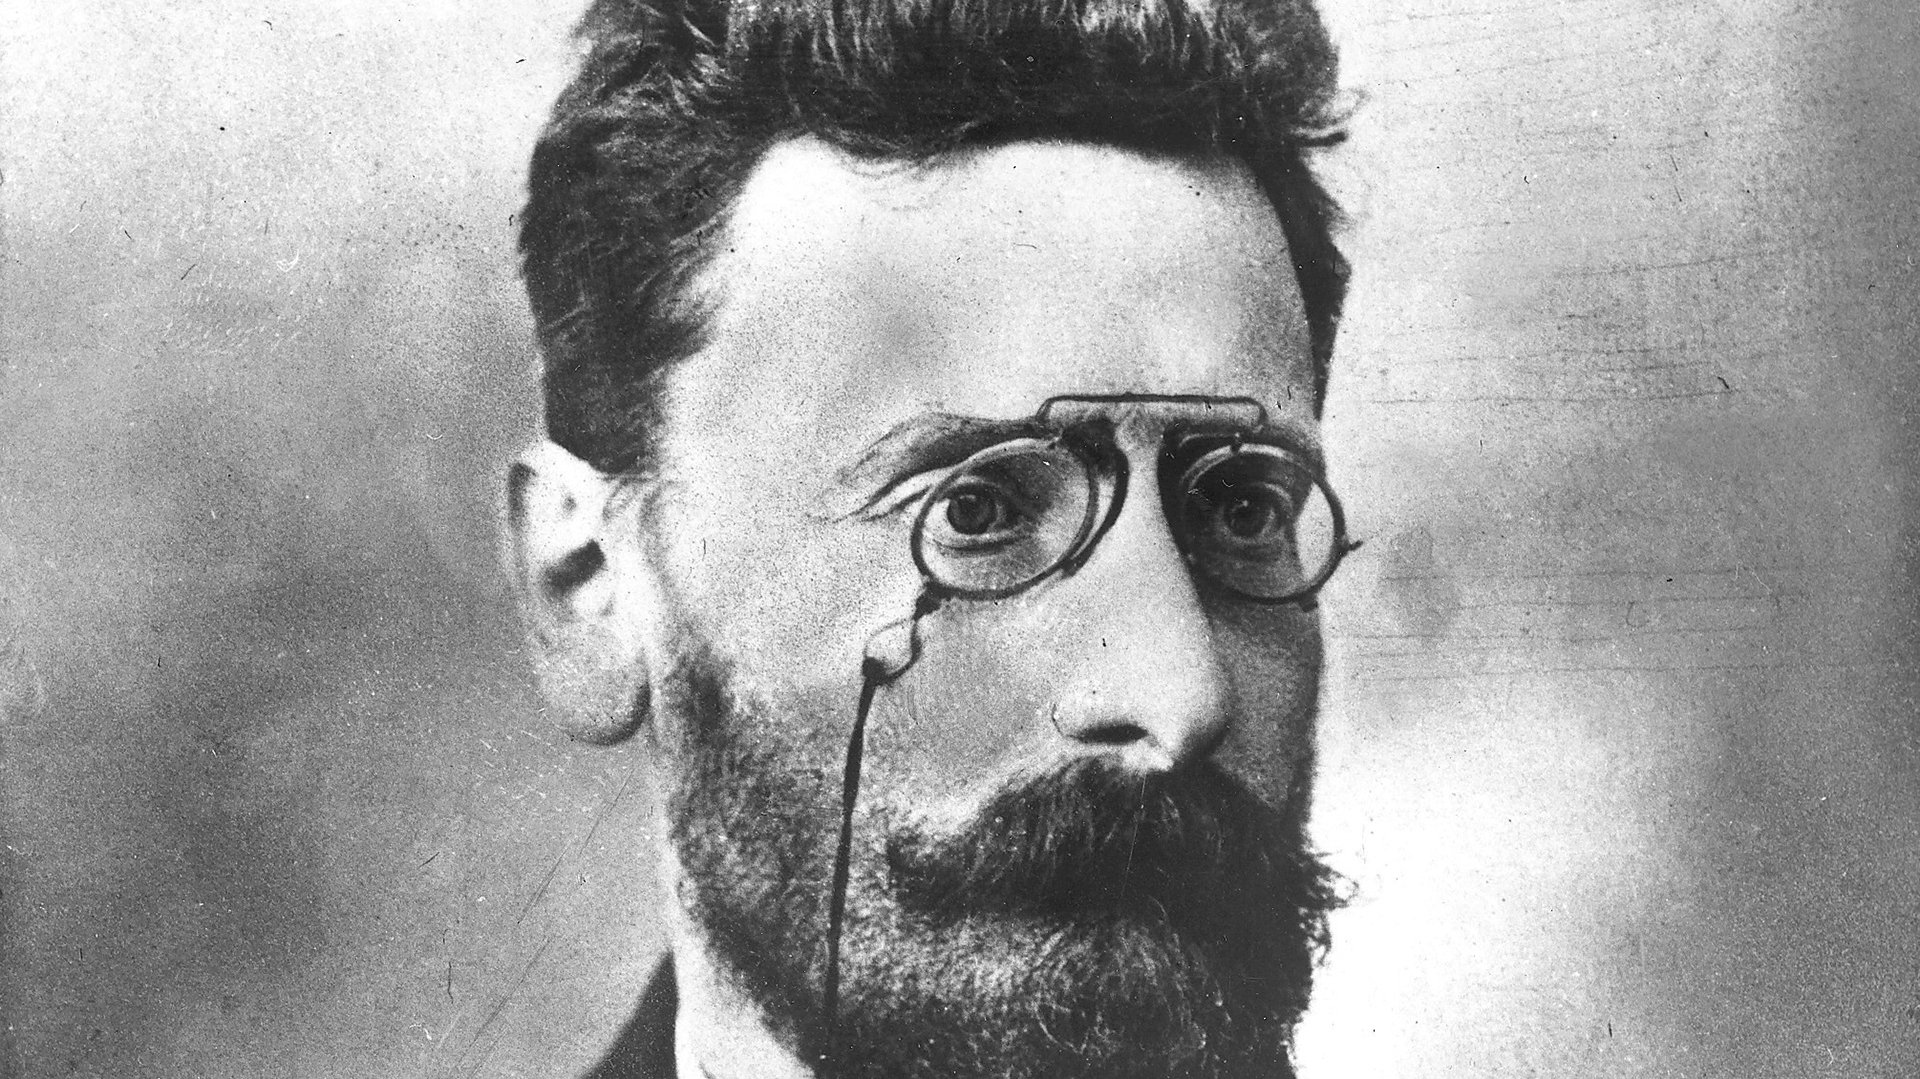 Joseph-Pulitzer-About-Page-Featured-Image-.jpg